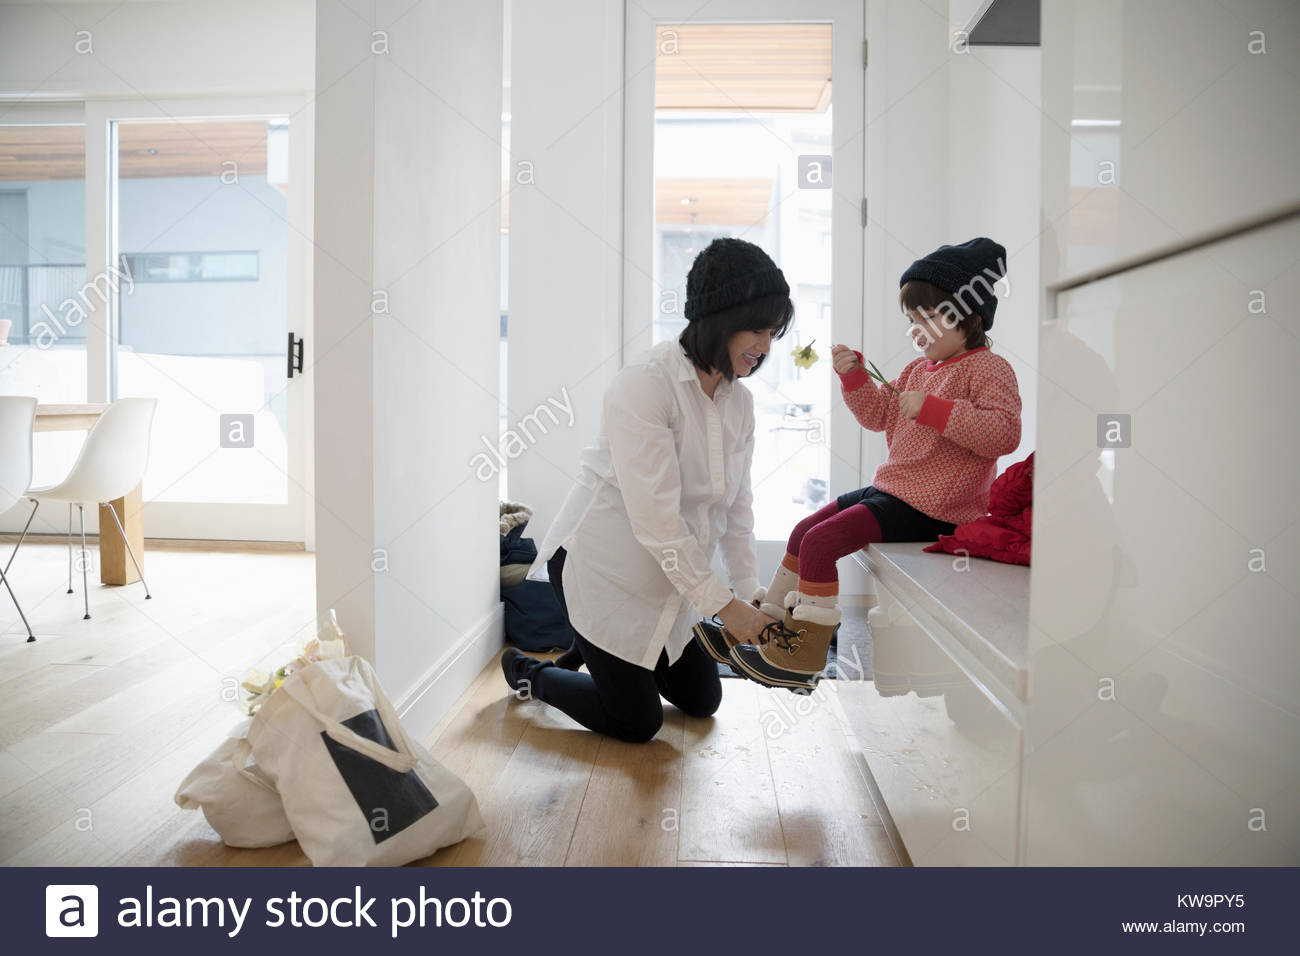 Pregnant mother putting boots on toddler daughter - Stock Image